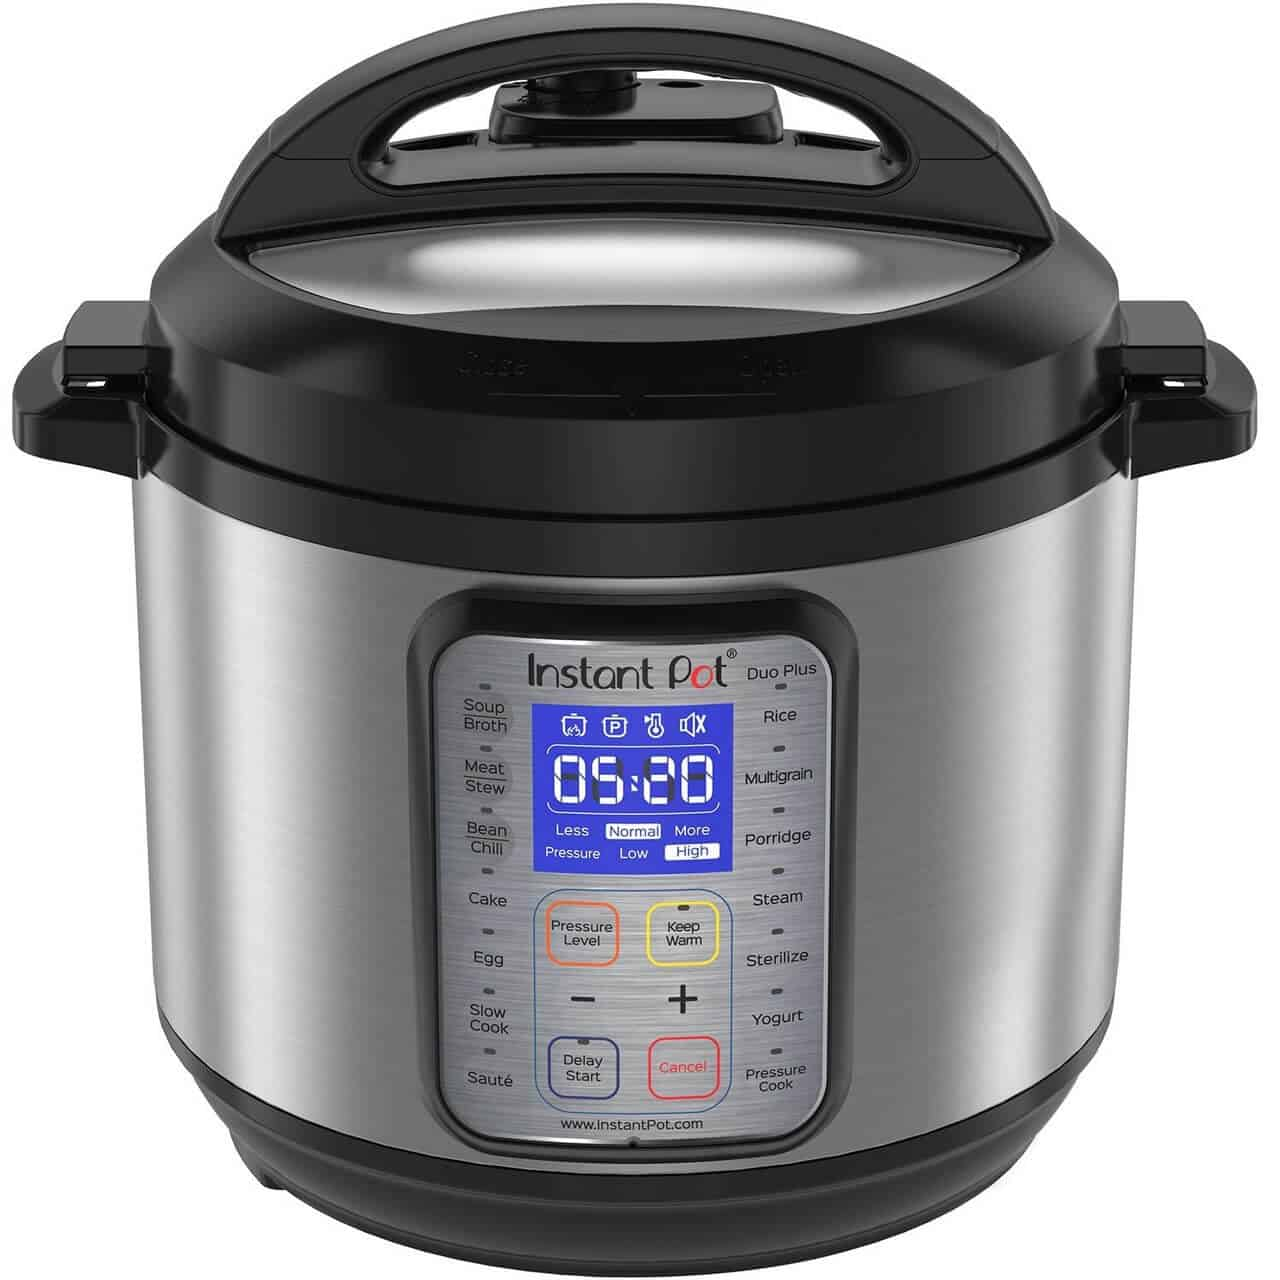 Duo Plus 9-in-1 (6 Quart)